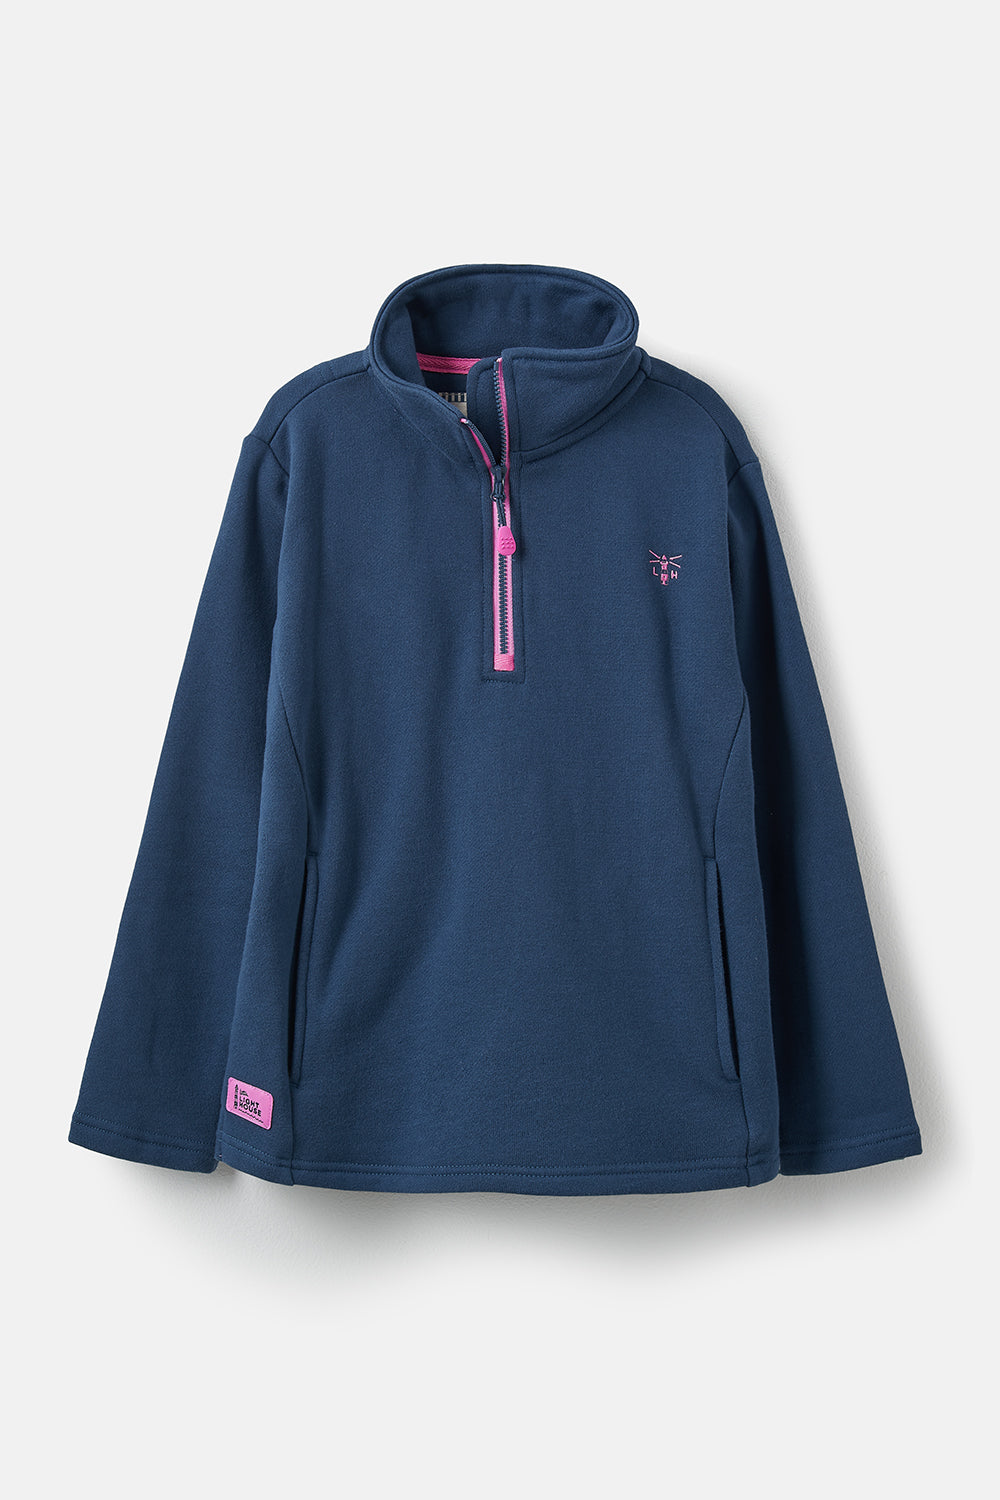 Lighthouse Robyn - Girl's Half Zip Sweatshirt - Navy